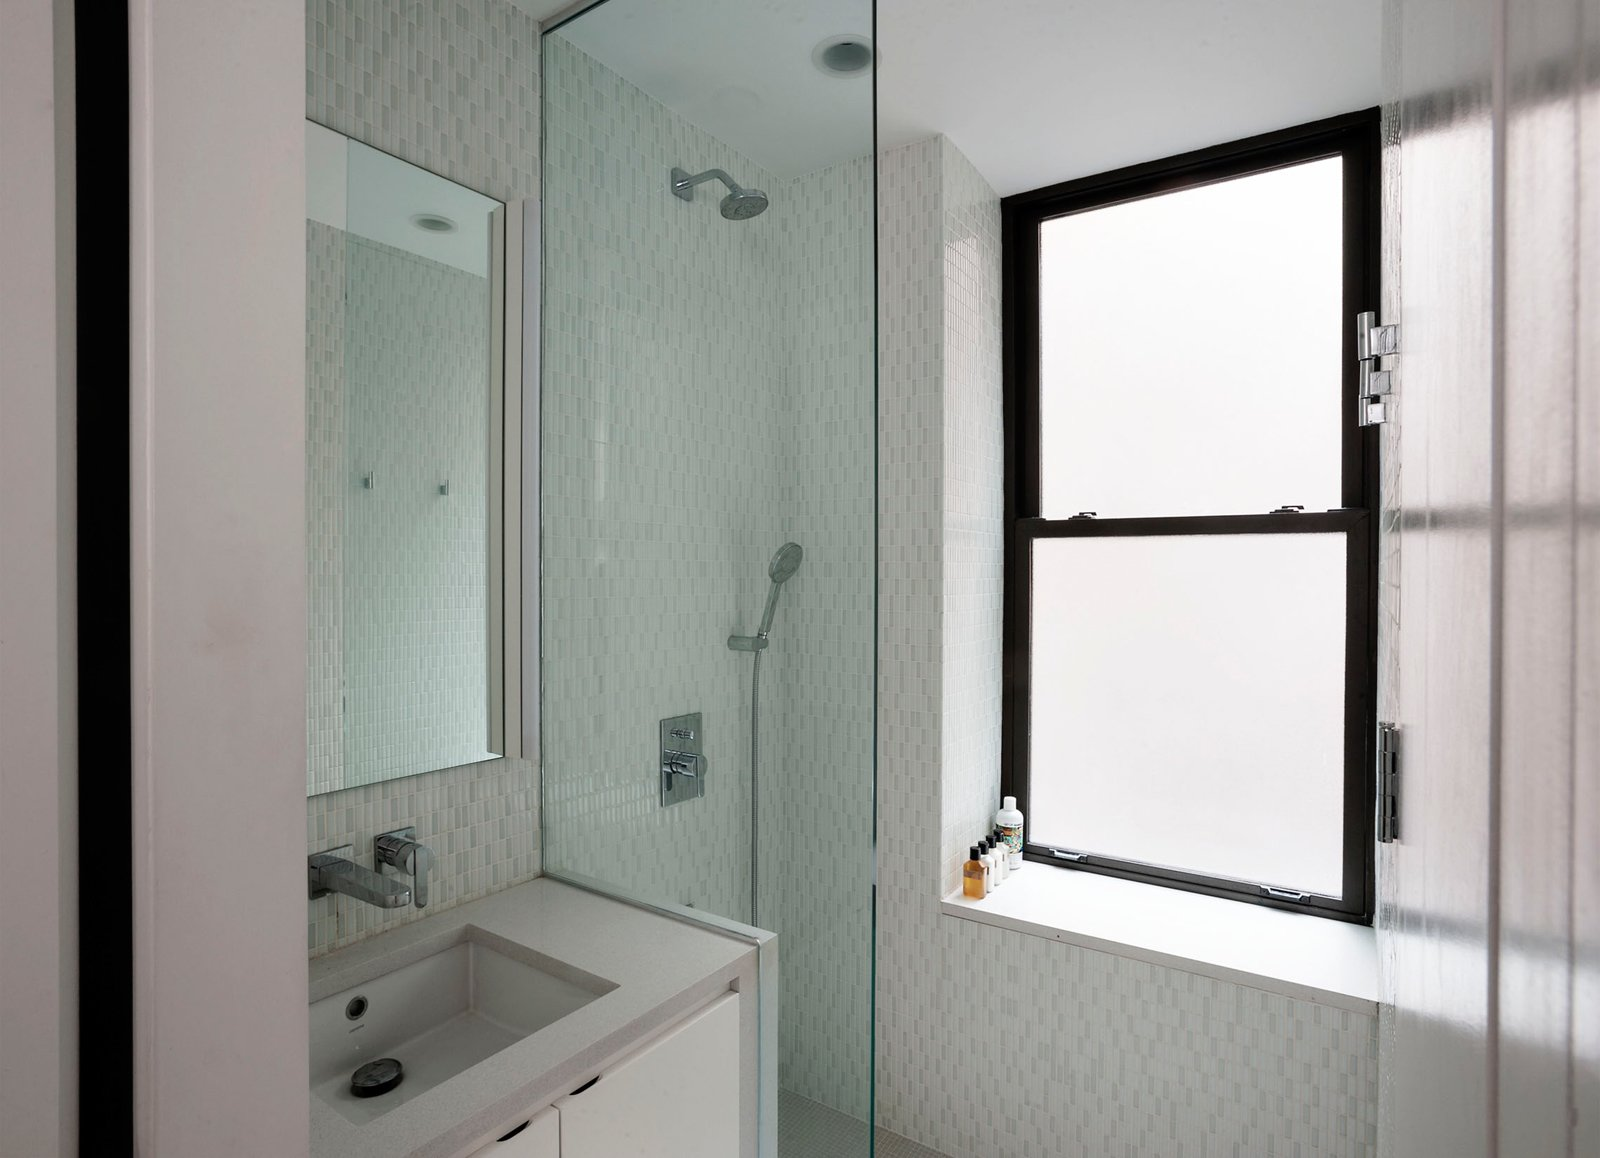 In the shower a pre-existing window sill was used to create a comfortable shower seat, while the glass enclosure keeps the bathroom feeling open.